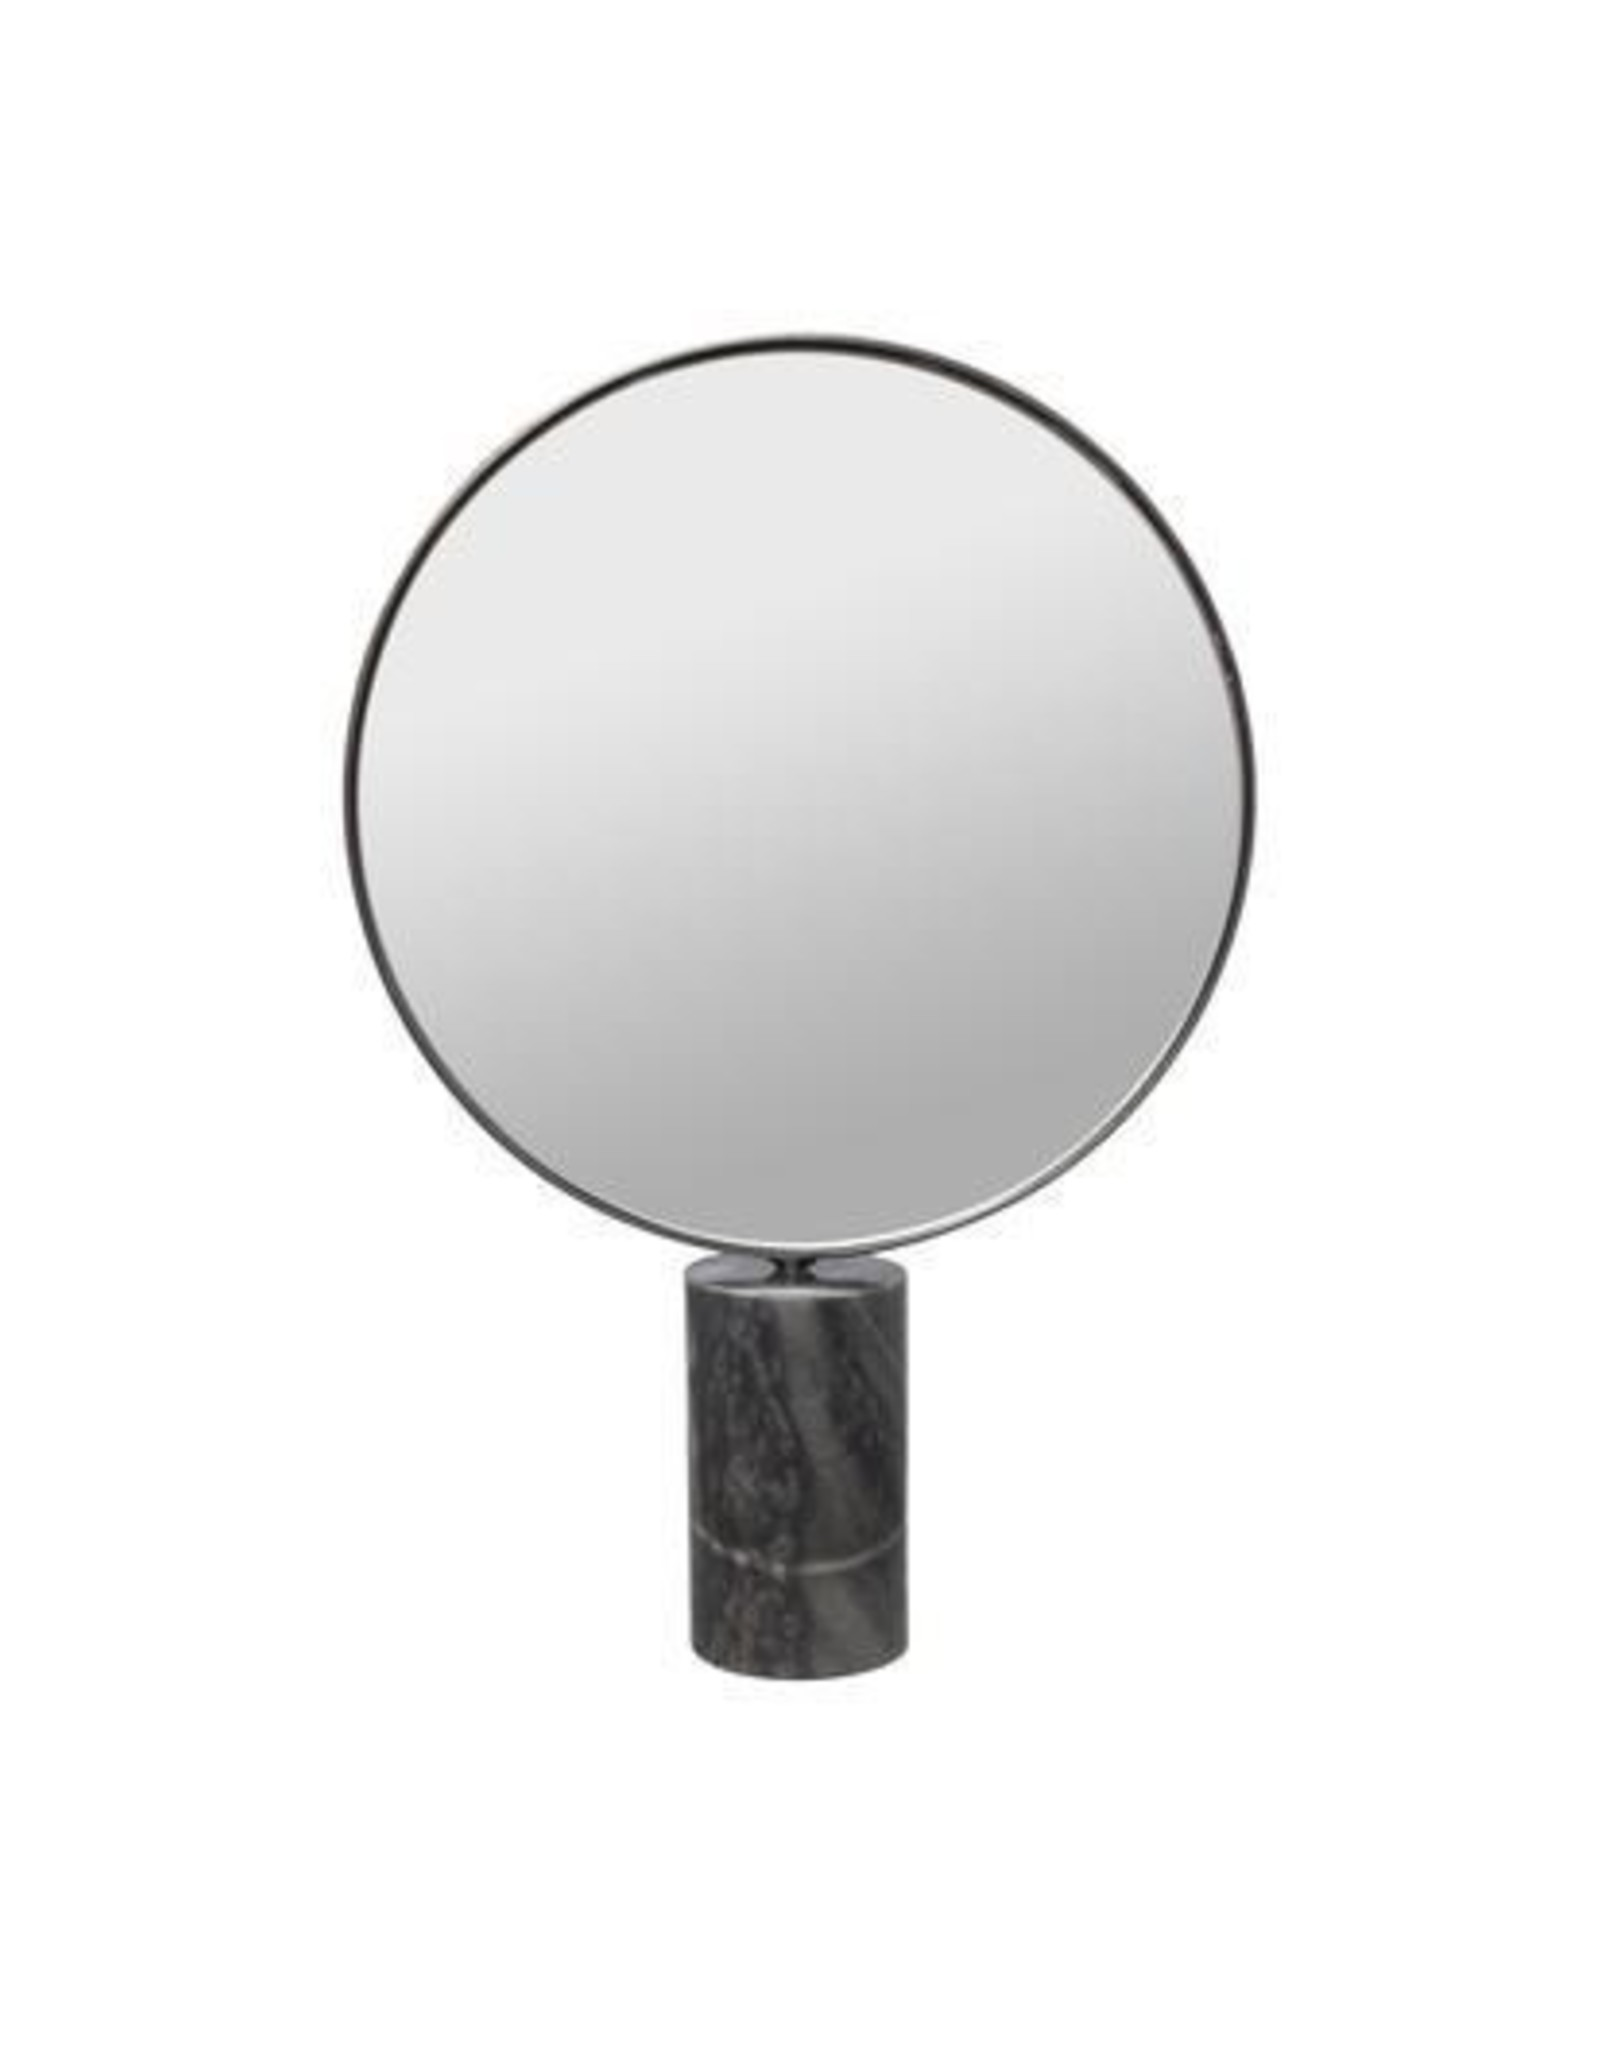 Dome Deco Dôme deco - Mirror round on marble stand